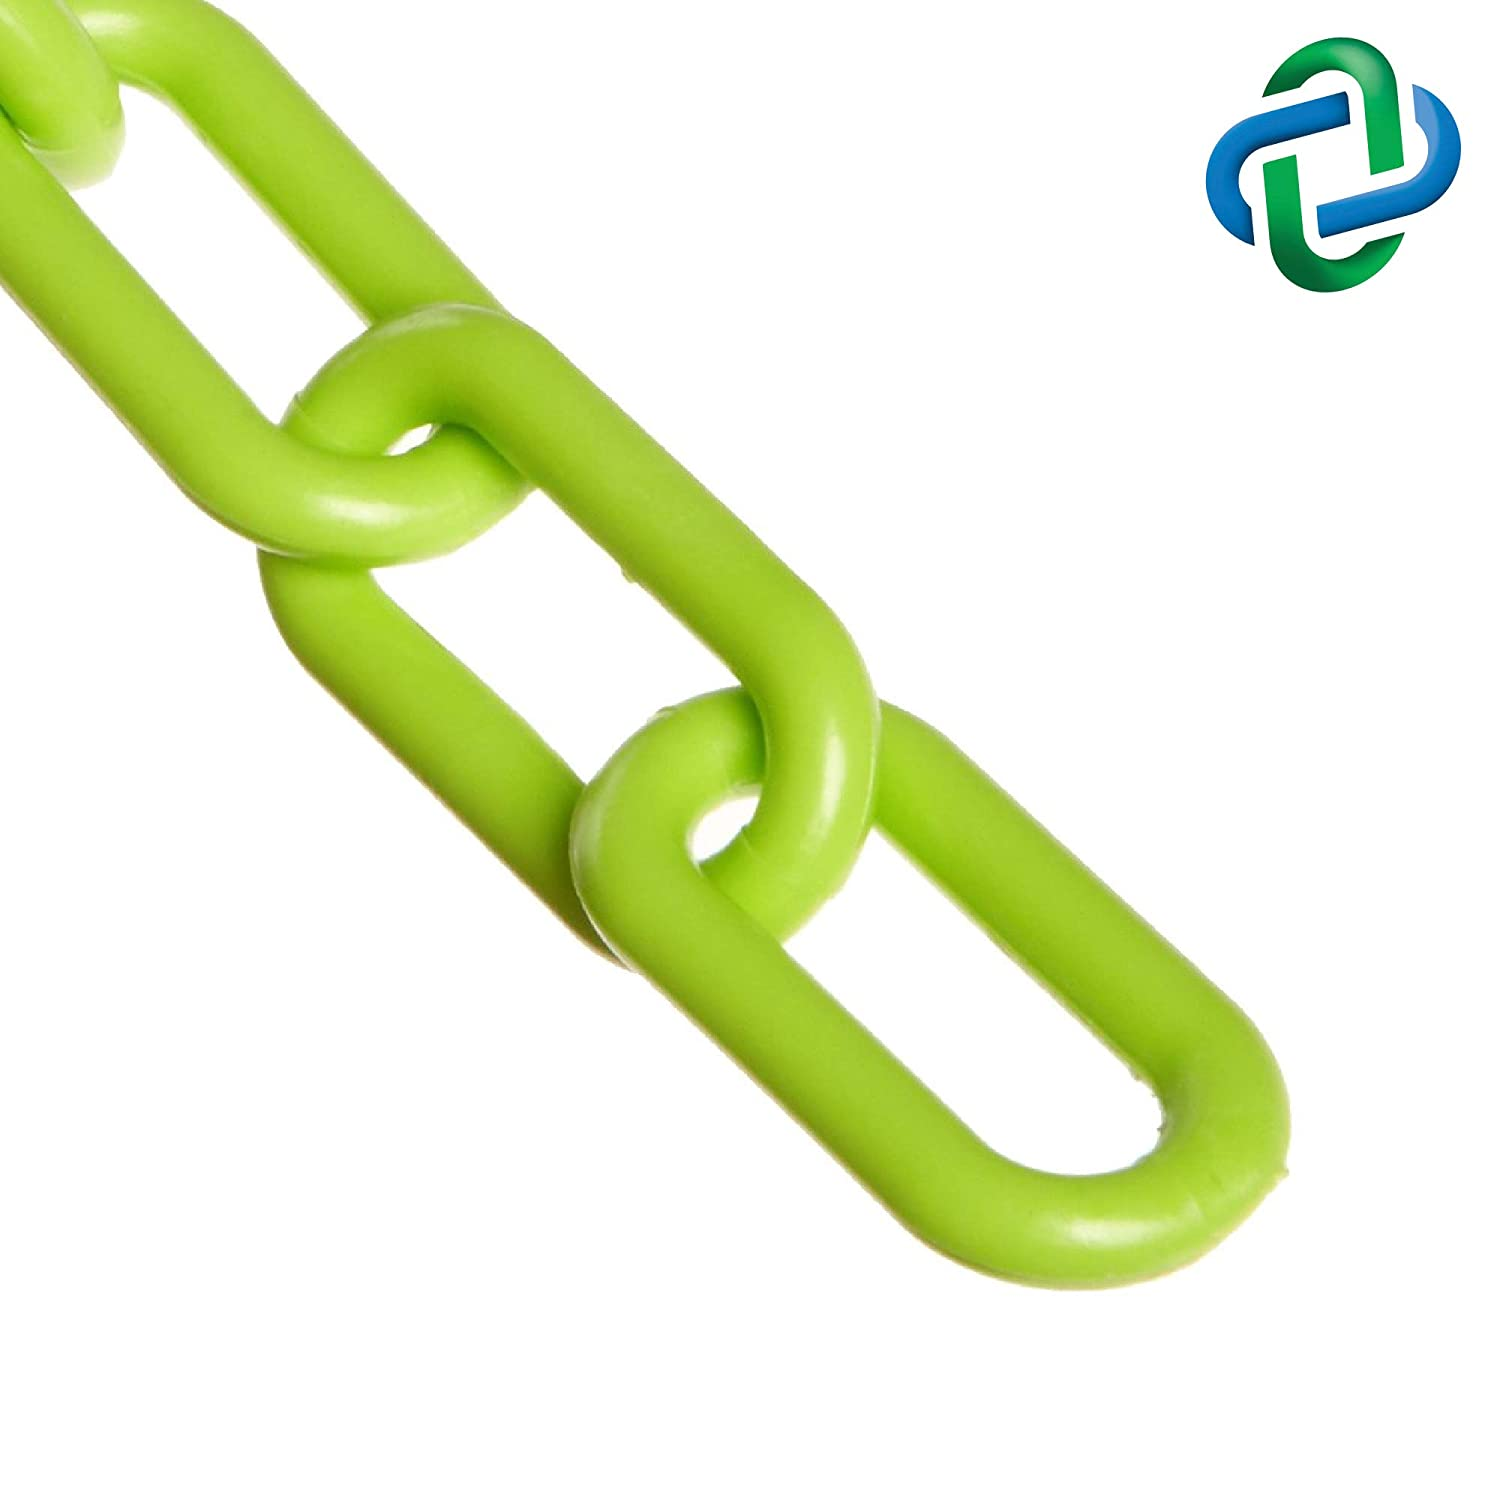 2-Inch Link Diameter Safety Green 50014-10 10-Foot Length Chain Plastic Barrier Chain Mr